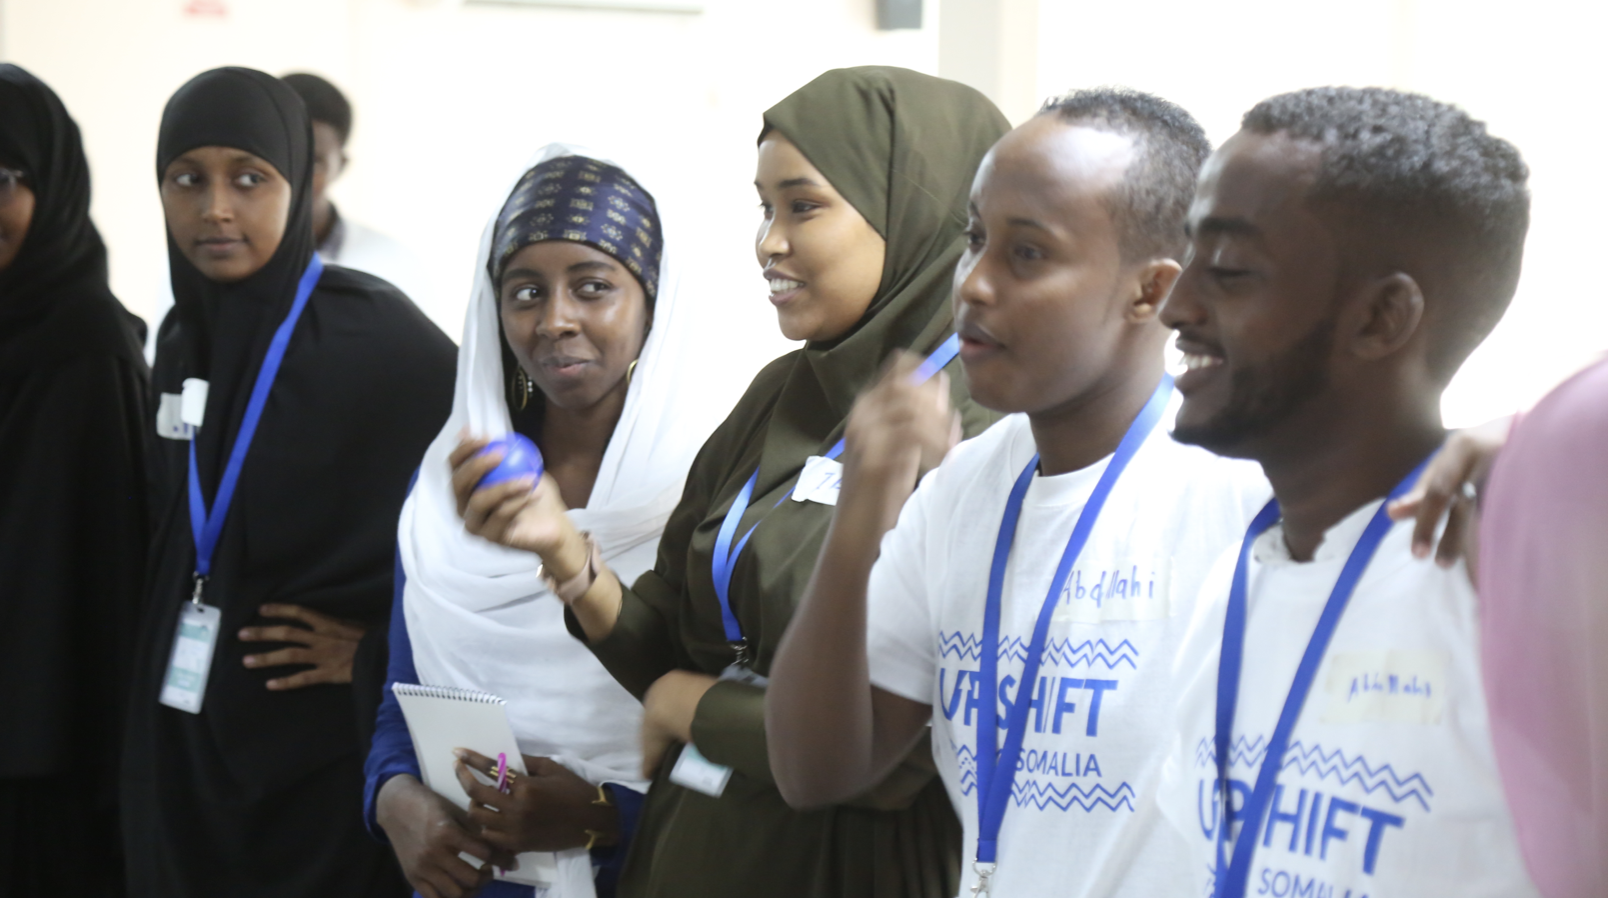 Developing changemaker skills in African youth